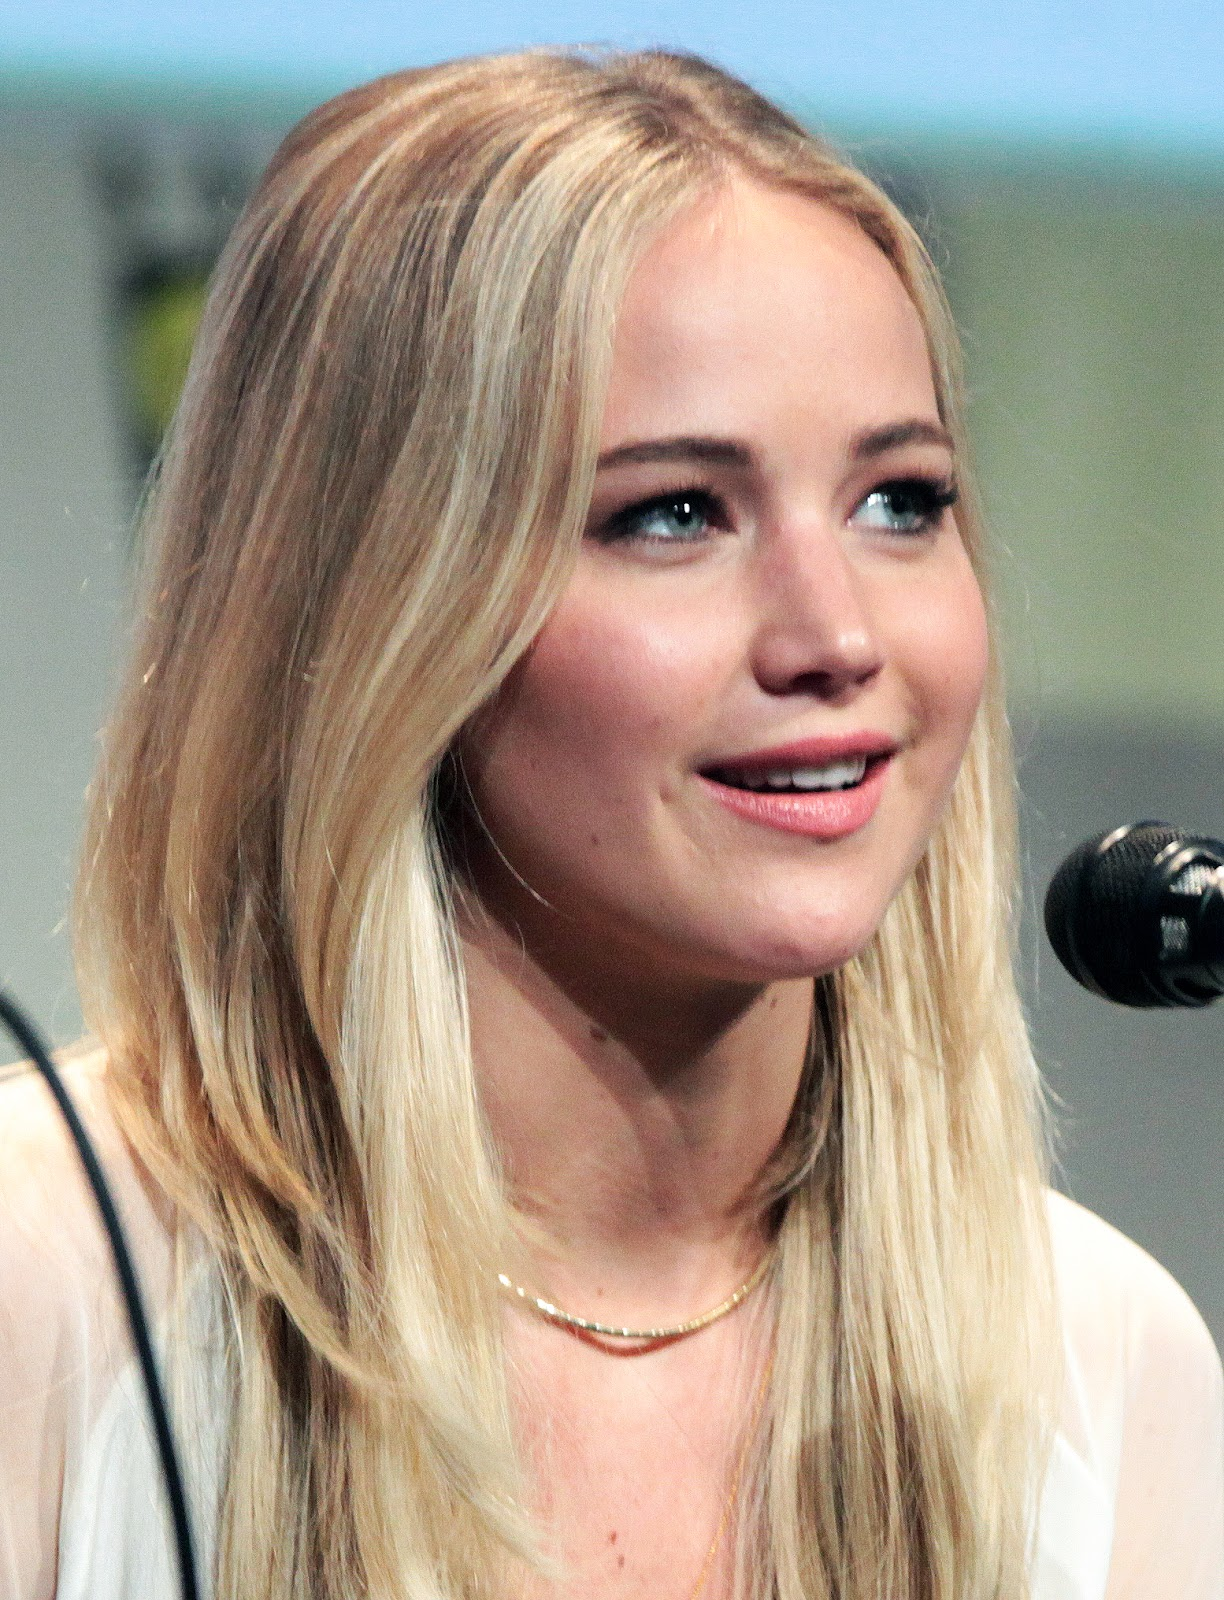 6. Jennifer Lawrence